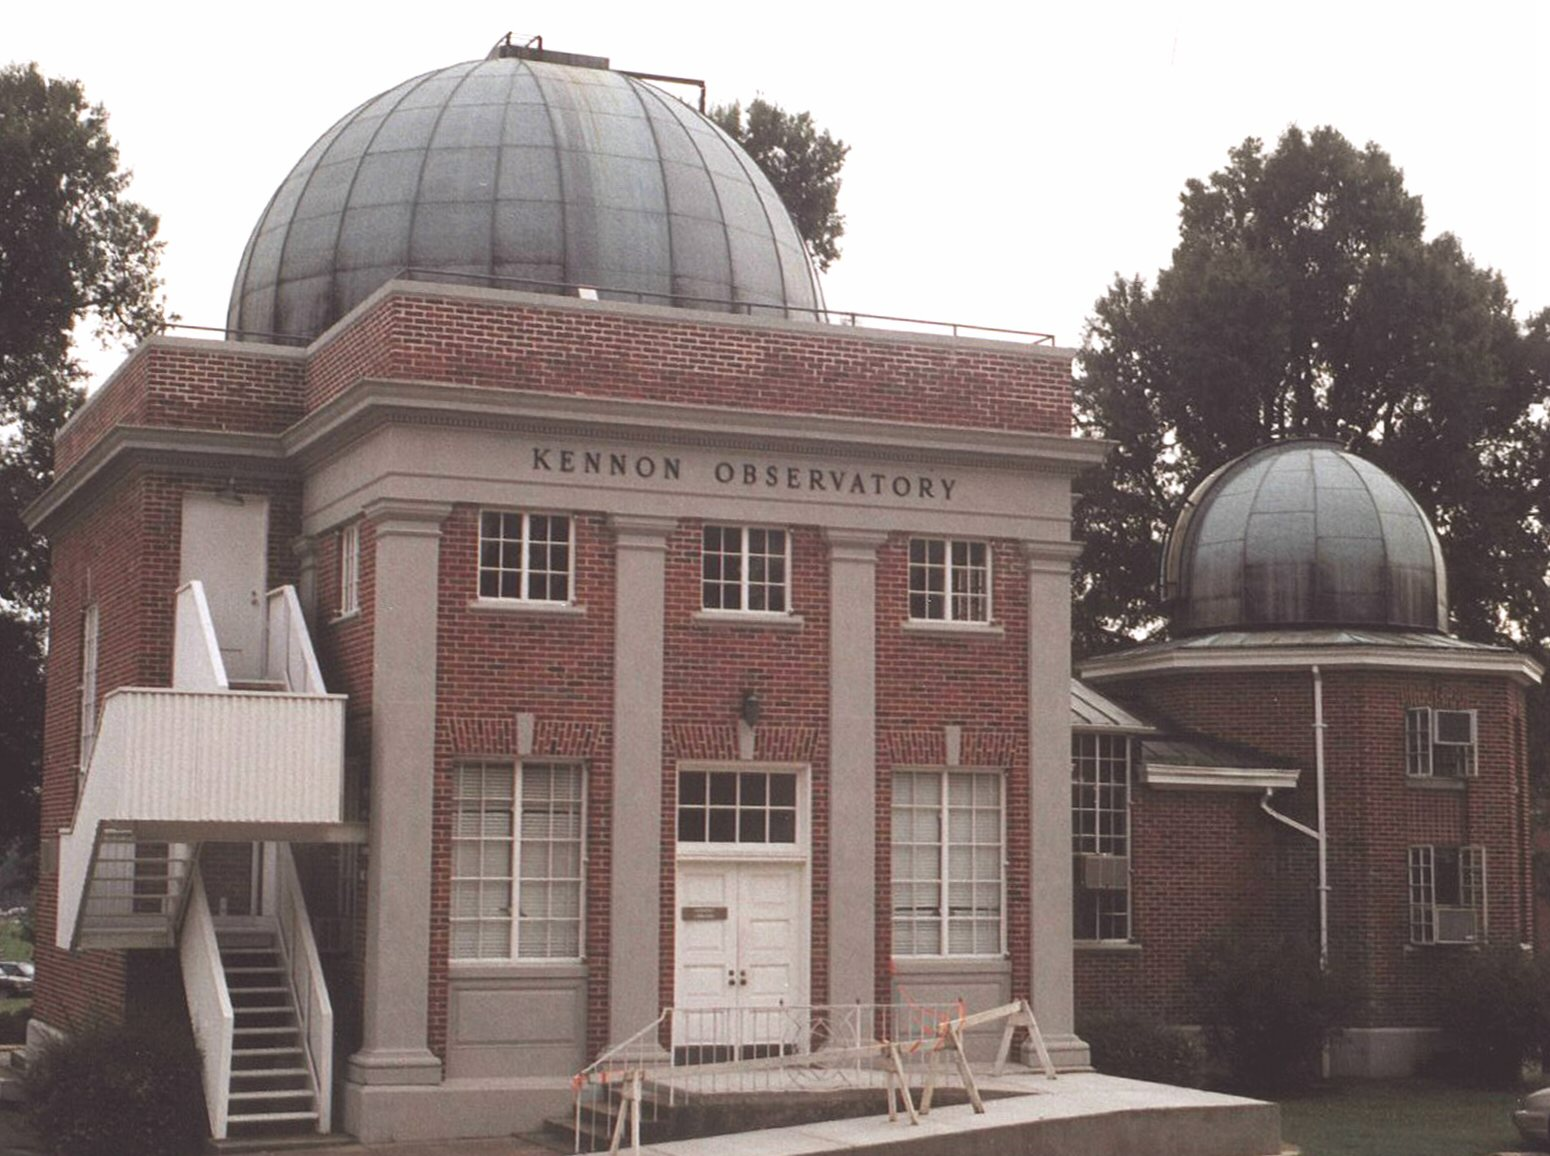 North side of Kennon Observatory